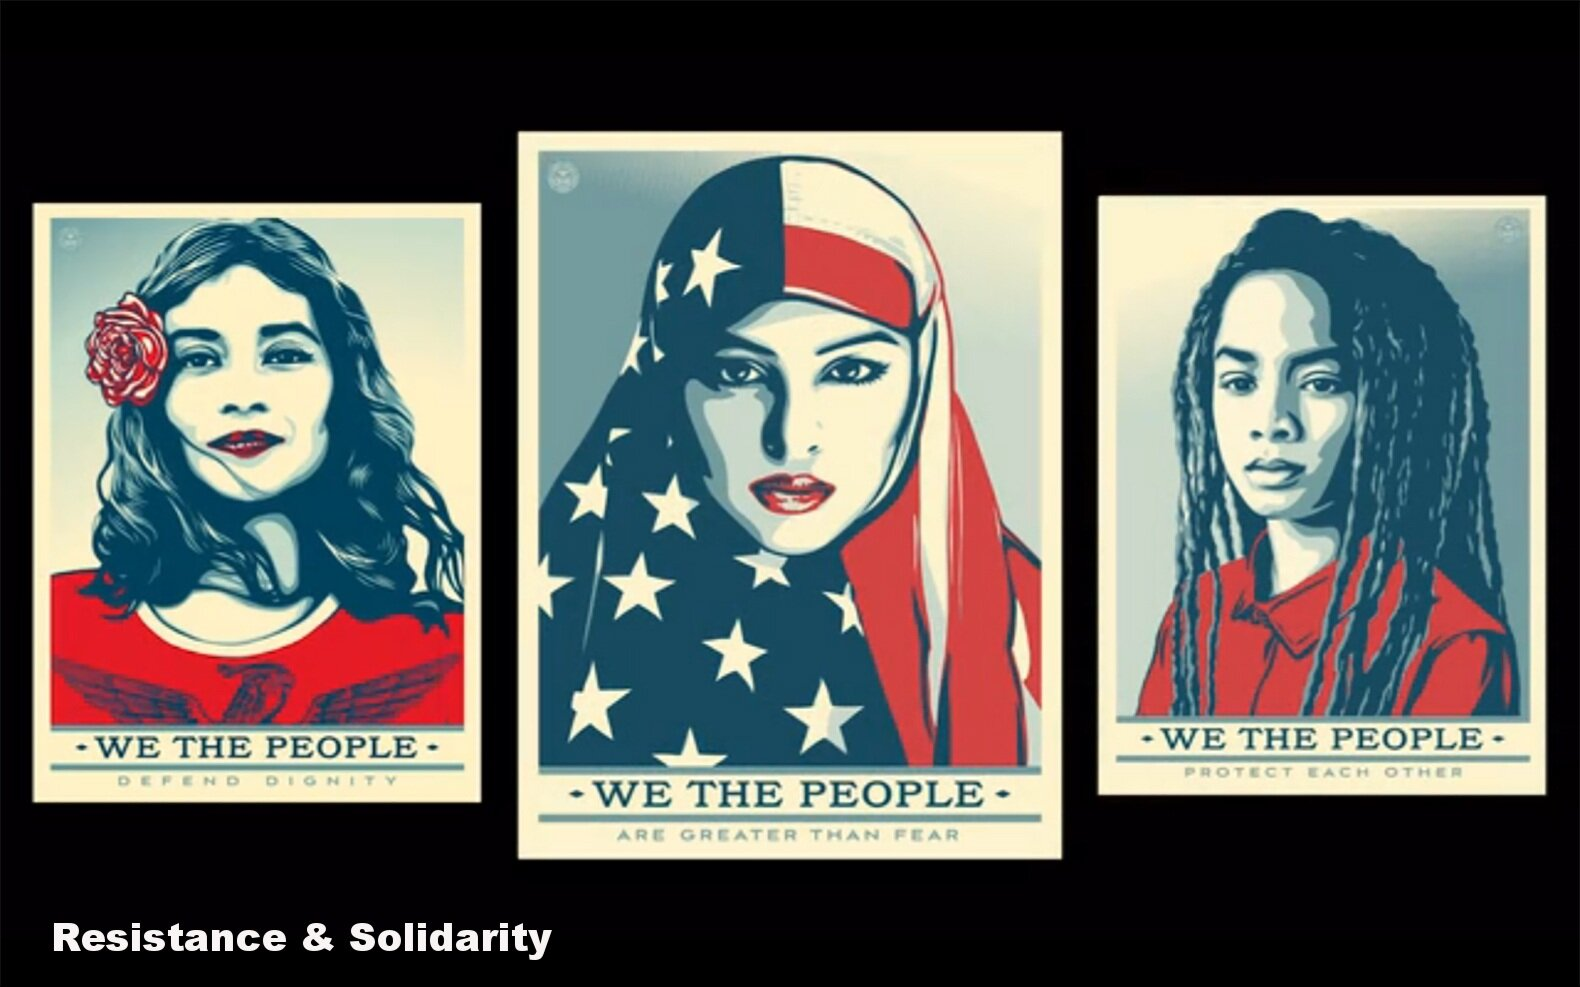 image credit: Shepard Fairey and  amplifier.org